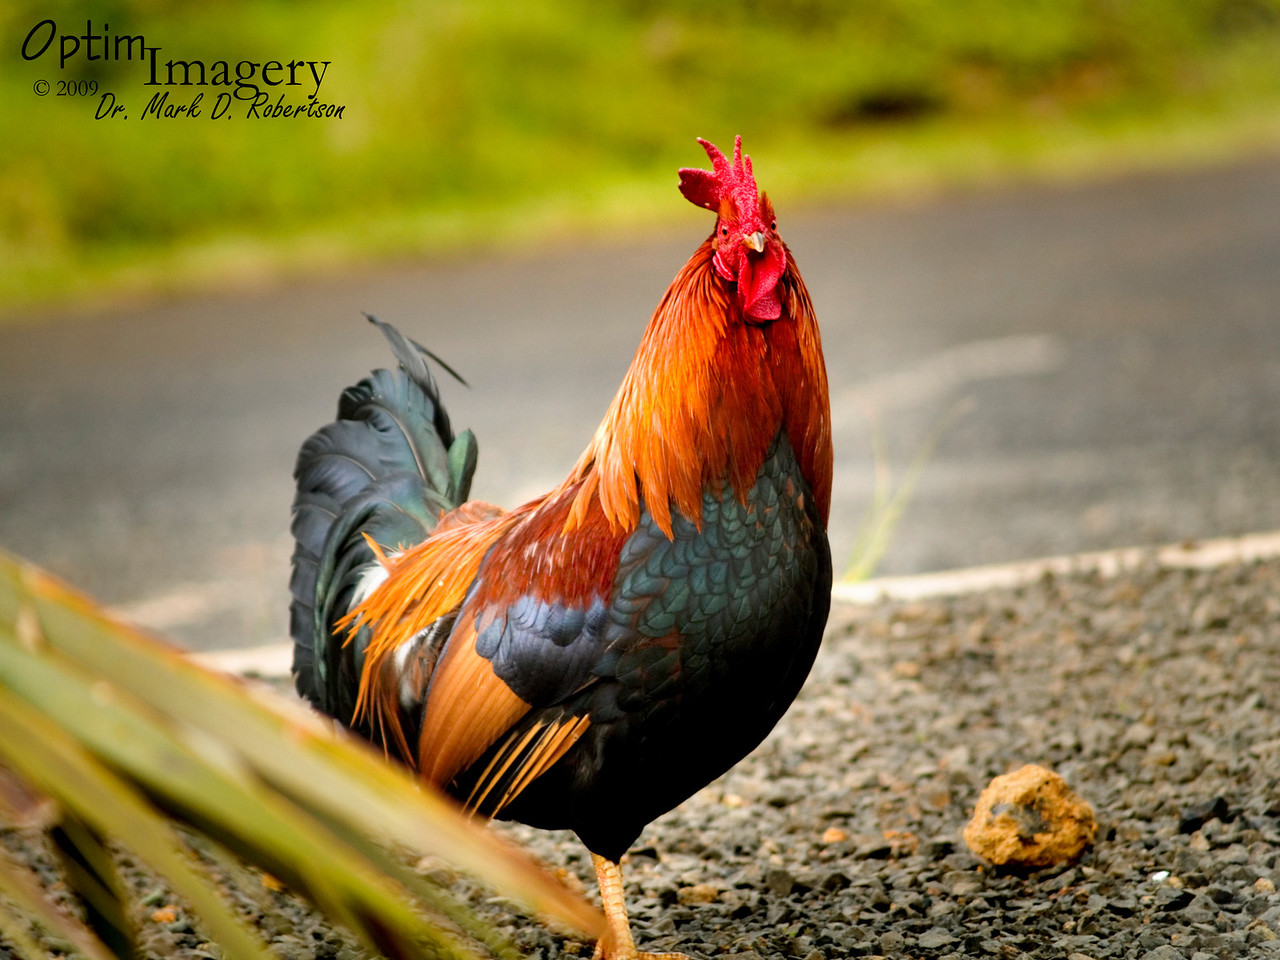 Chickens were EVERYWHERE on Kauai.  It's my understanding (which may or may not be correct), that they are a more recent introduction than are the goats and pigs, but are also feral nonetheless.